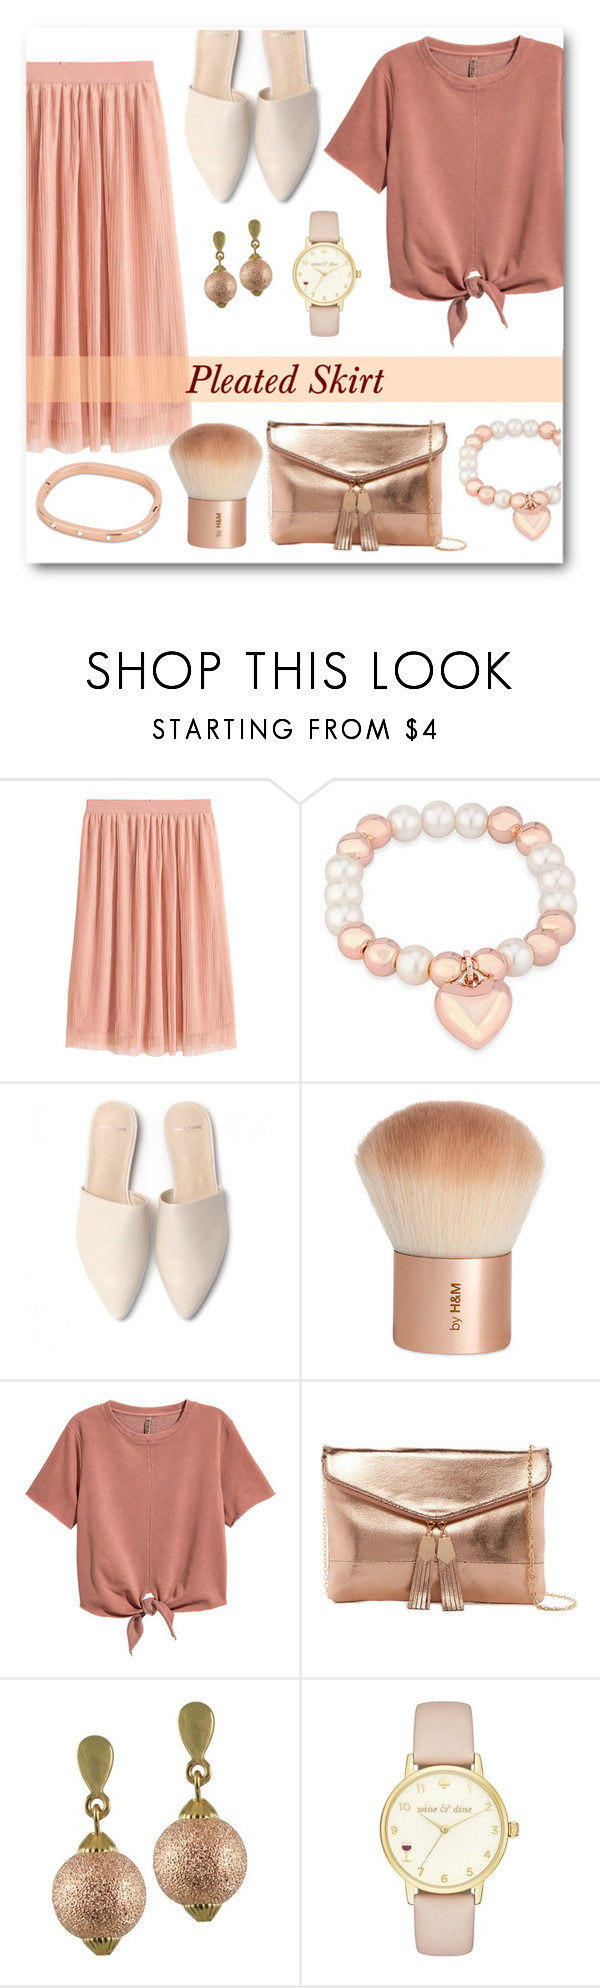 """""""Pleated Skirt"""" by eternal-collection ❤ liked on Polyvore featuring H&M, Urban Expressions and Kate Spade"""